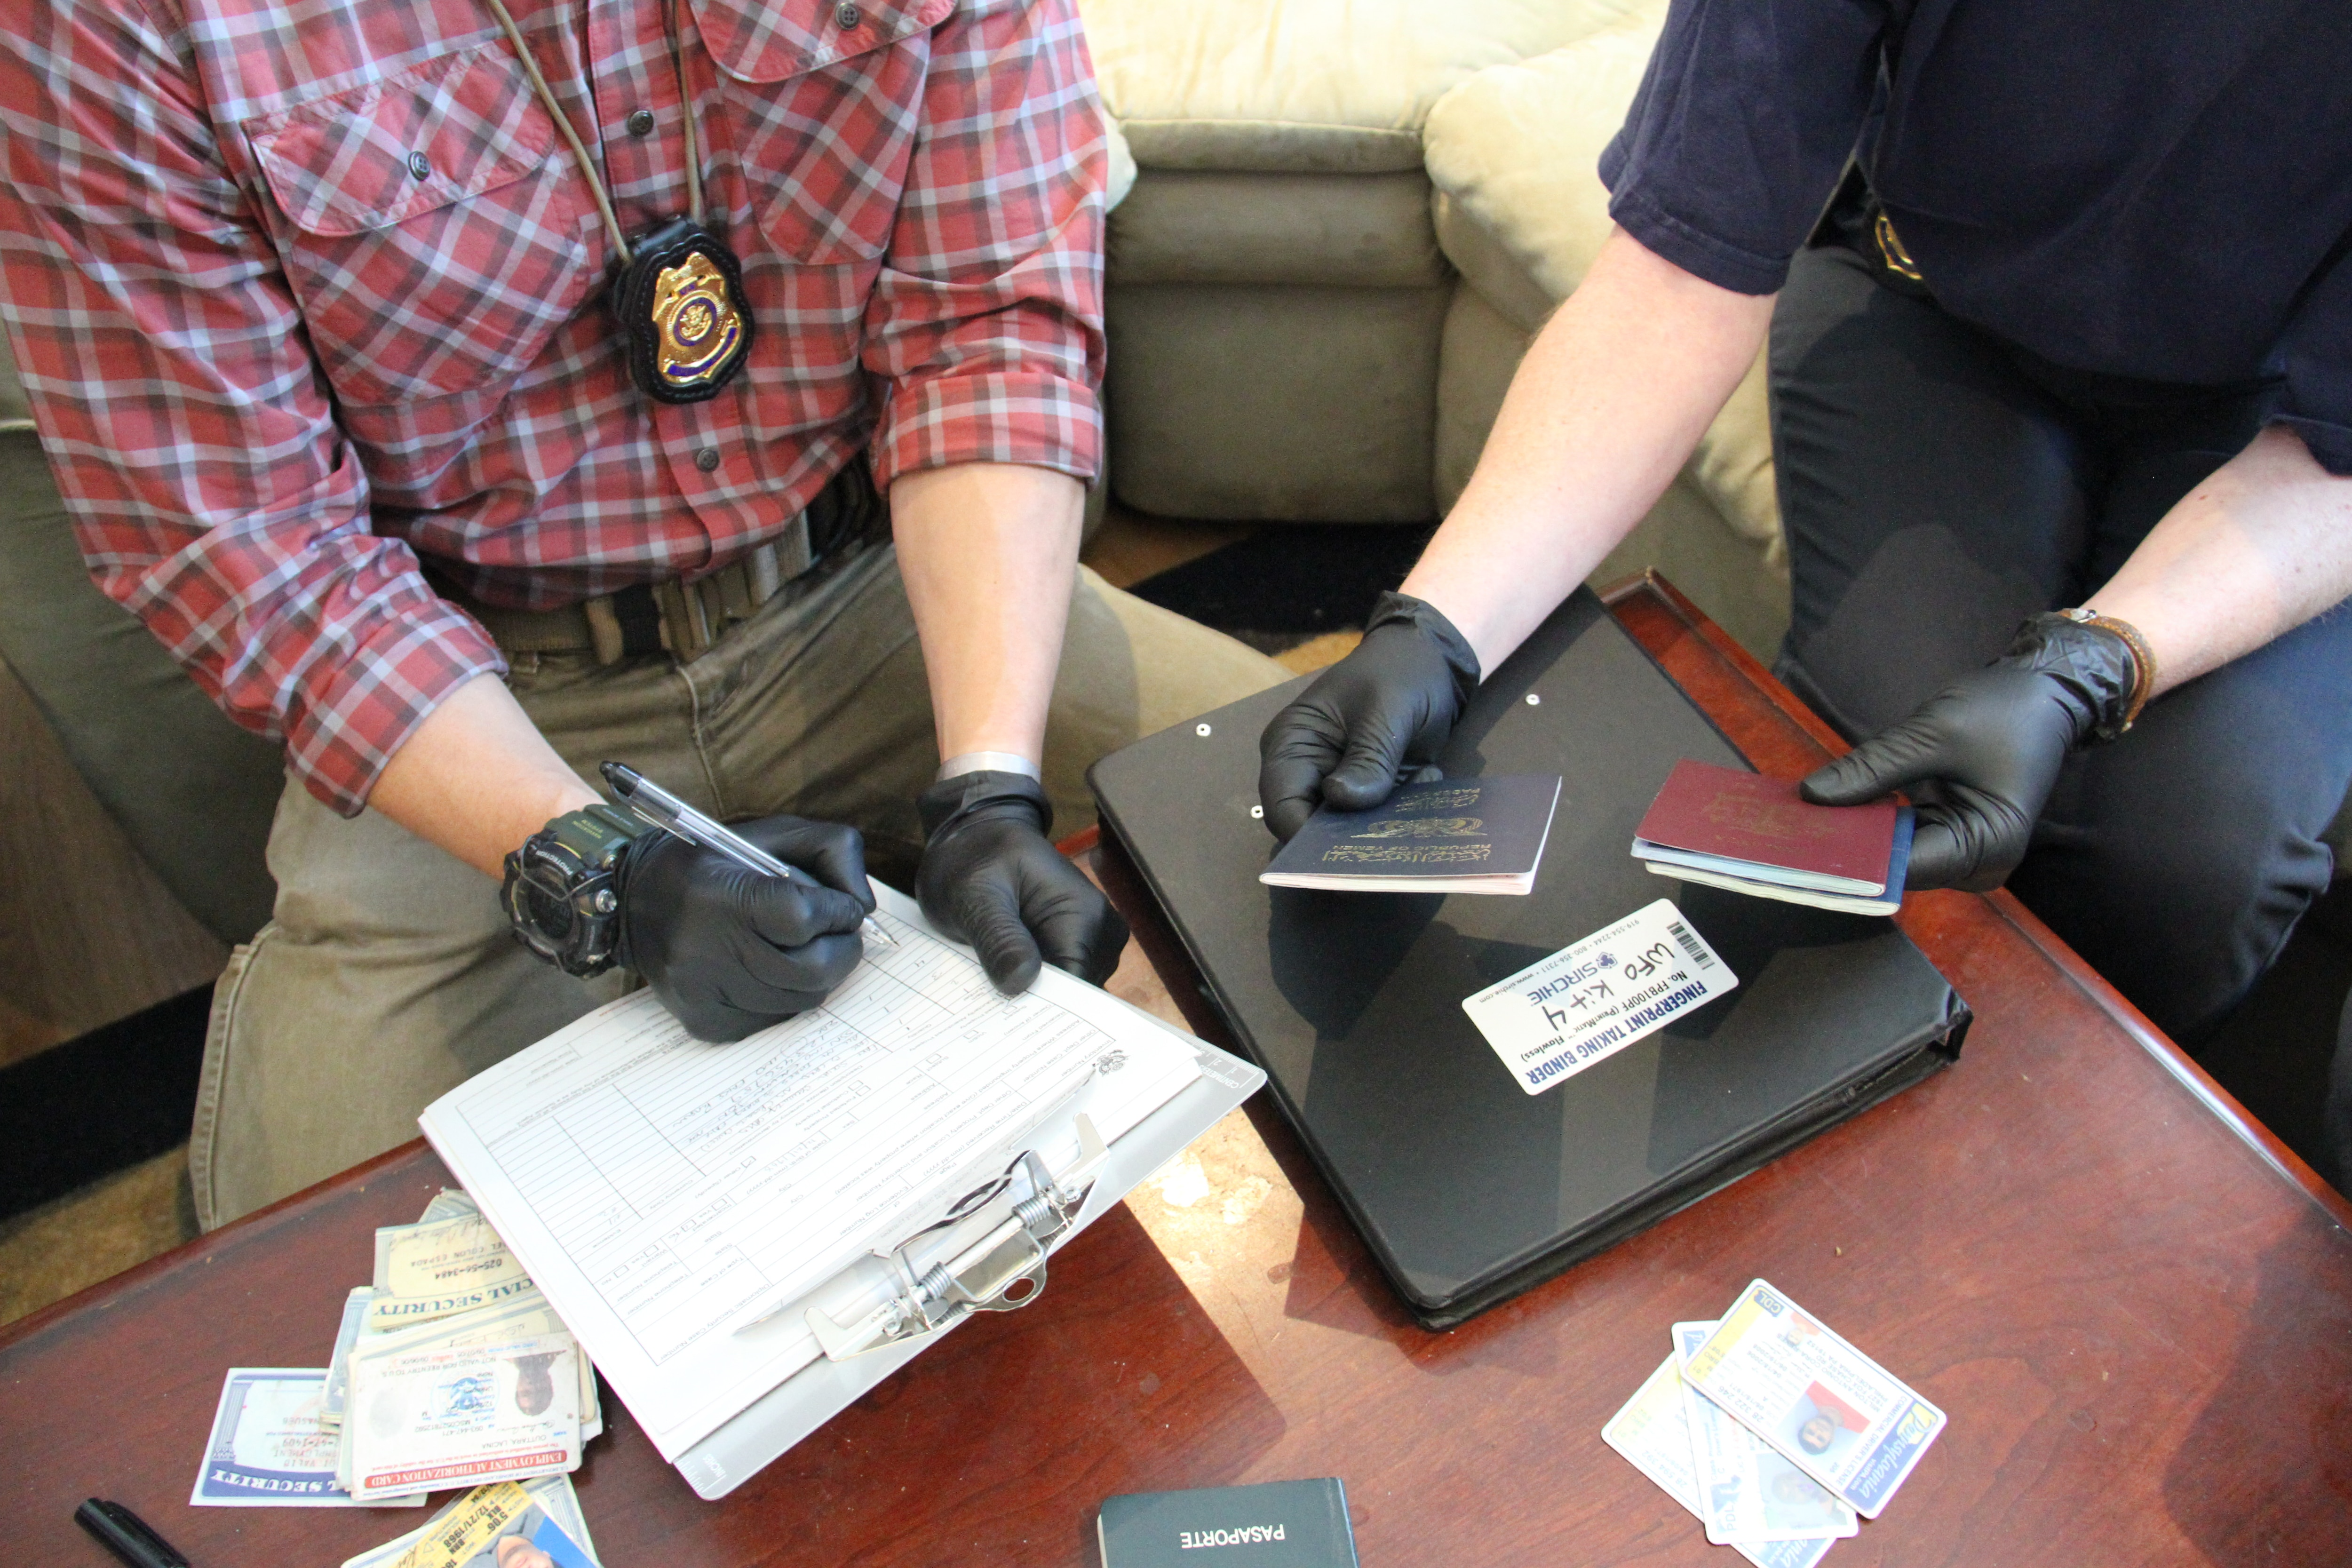 Special agents from the Diplomatic Security Service Washington Field Office demonstrate evidence collection, Feb. 28, 2019. (U.S. Department of State photo)